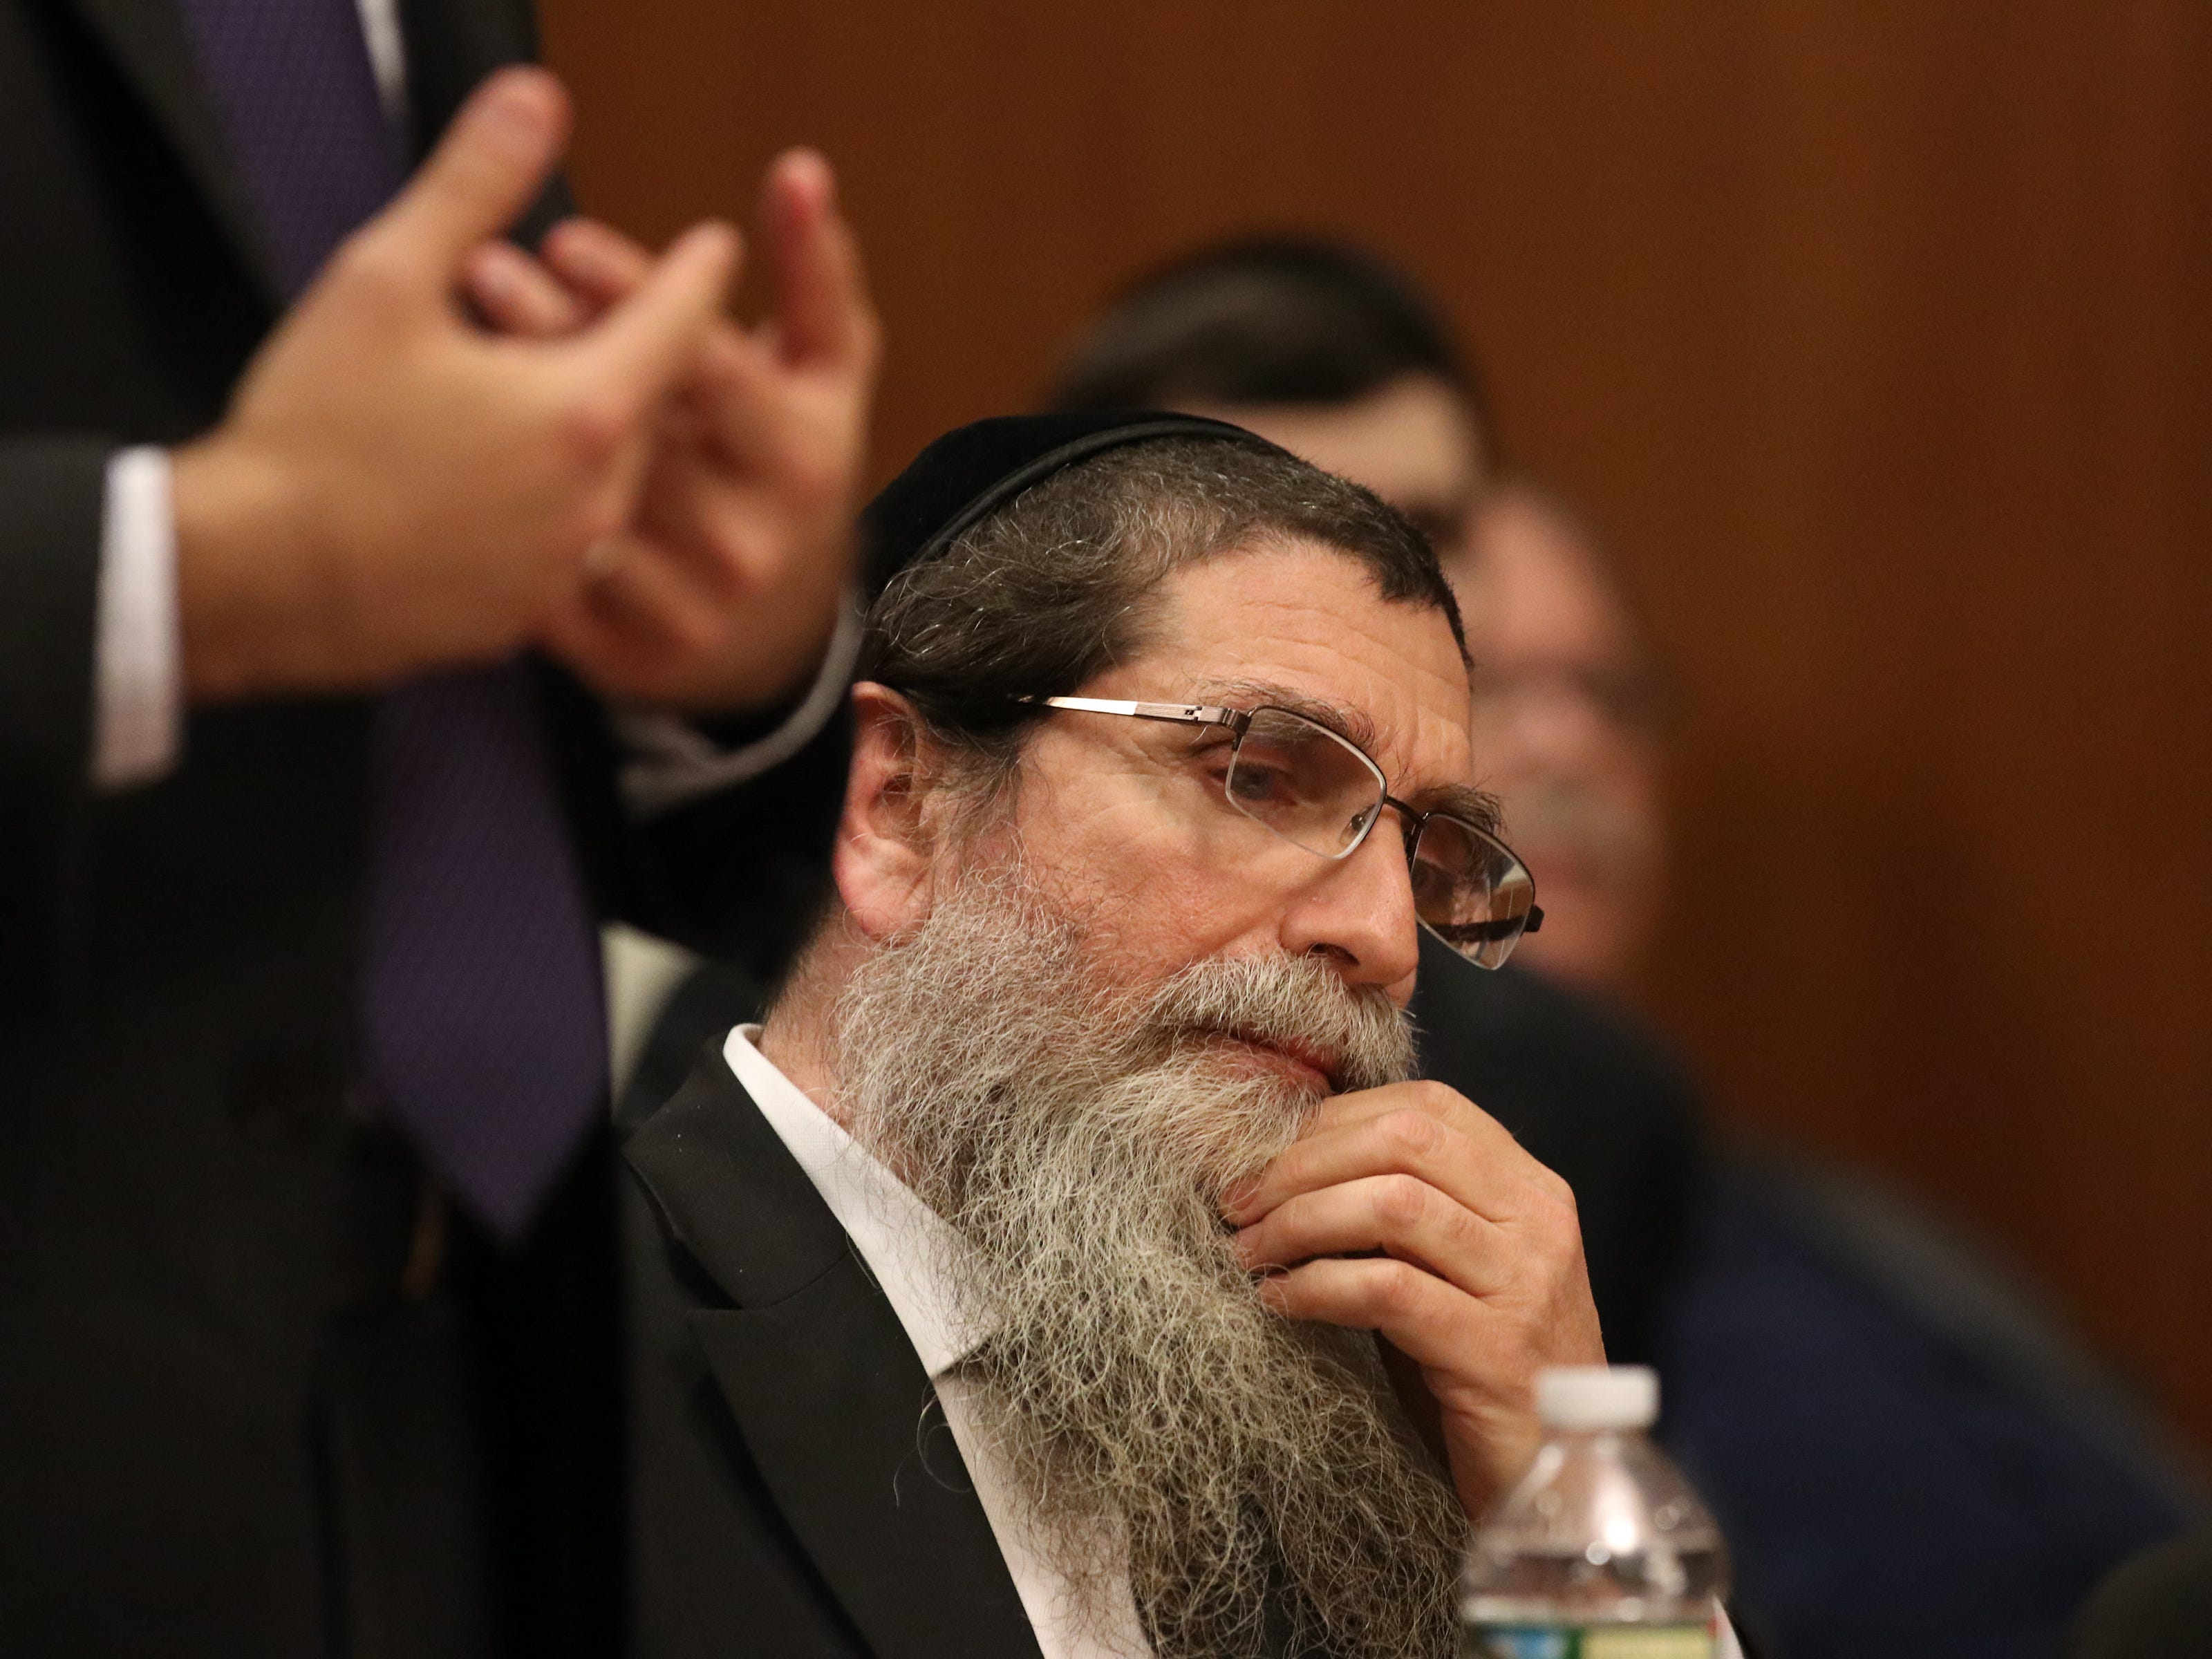 Rabbi Osher Eisemann, the founder of Lakewood special education school the School for Children with Hidden Intelligence who was found guilty of two criminal counts after a trial and faces prison time for the crimes, is sentenced before Judge Benjamin S. Bucca, Jr. at the Middlesex County Courthouse in New Brunswick,NJ Monday, April 29, 2019.